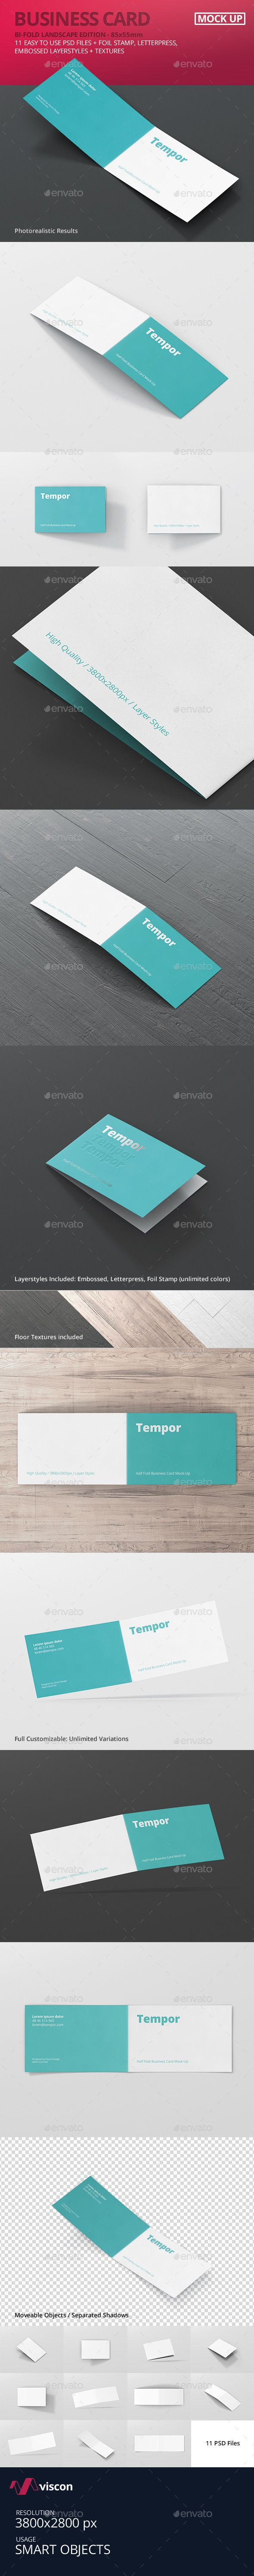 Best 25 Folded business cards ideas on Pinterest